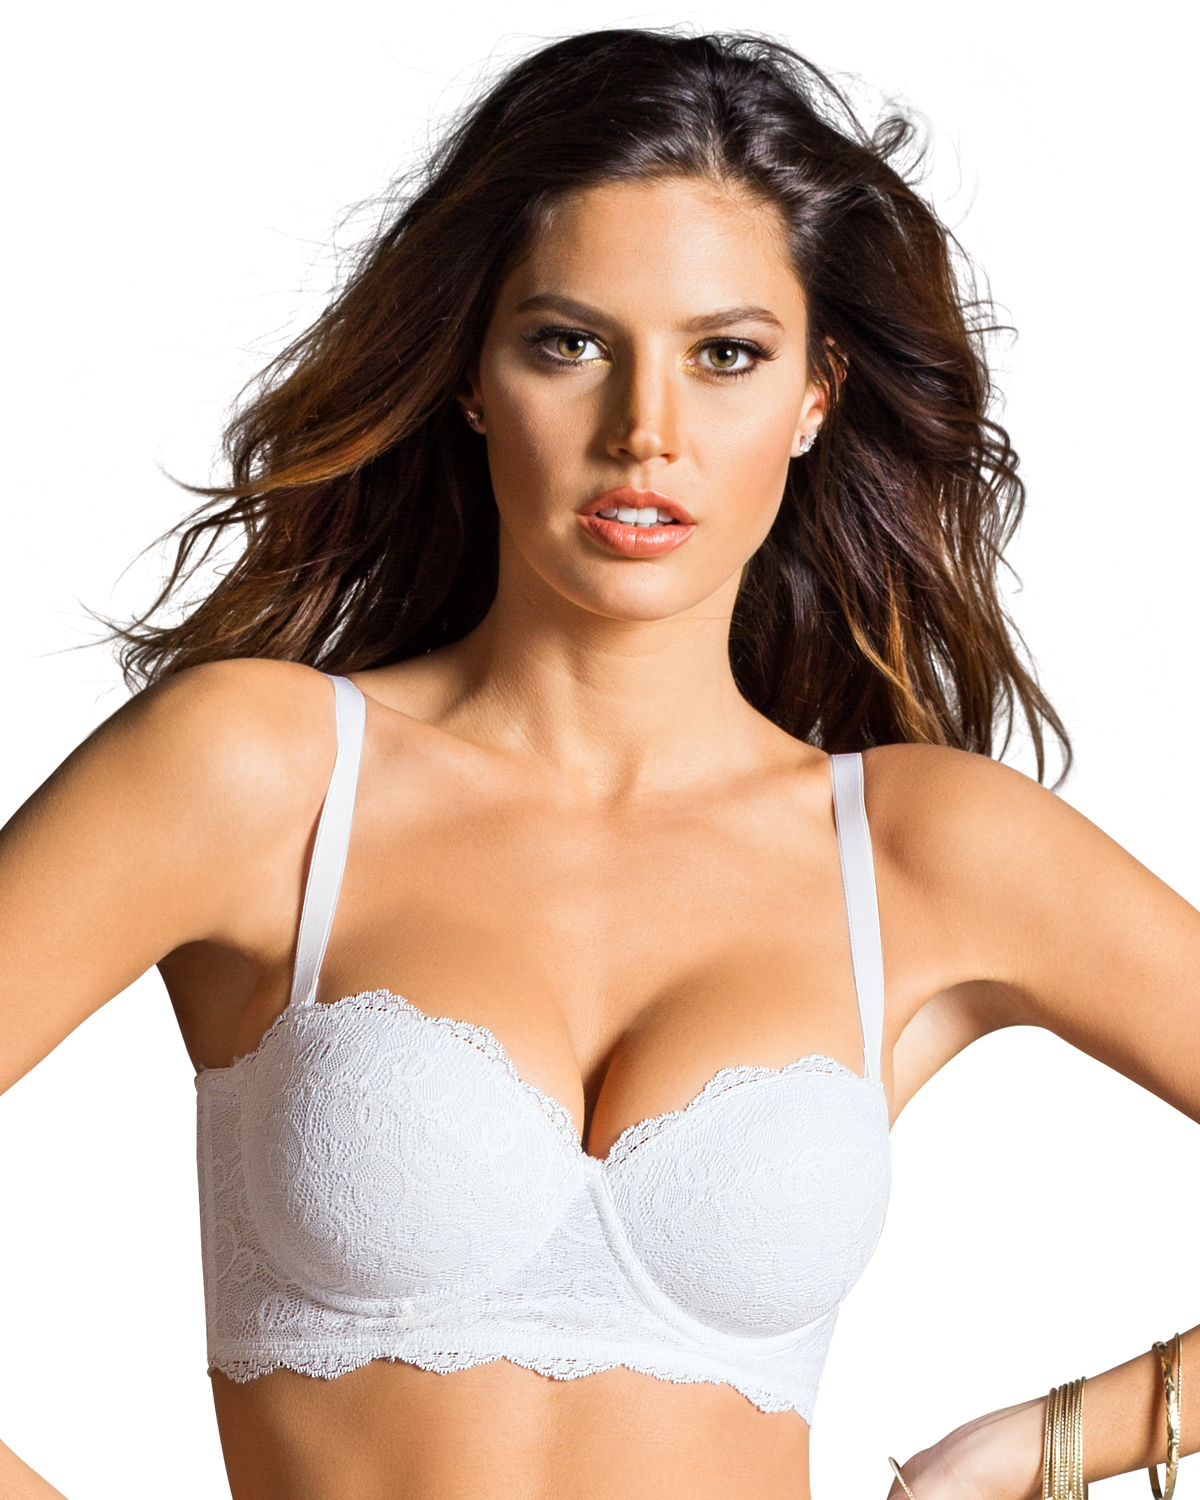 eb23eeef8c6 Why You Need a Push-Up Bra   How to Pick the Perfect One For You ...